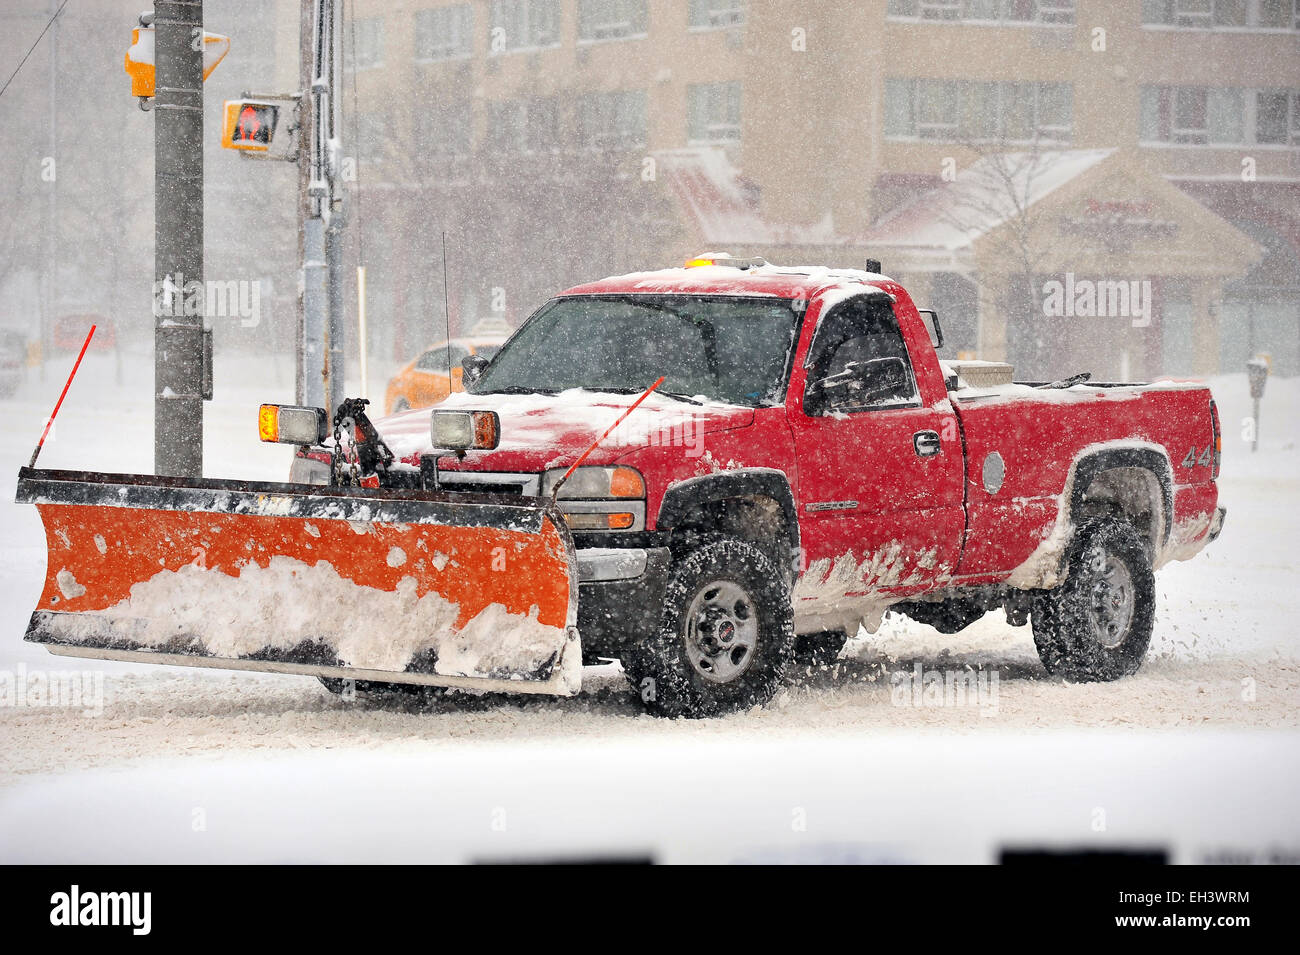 A snowplow attached to a red pick up truck in Canada. - Stock Image